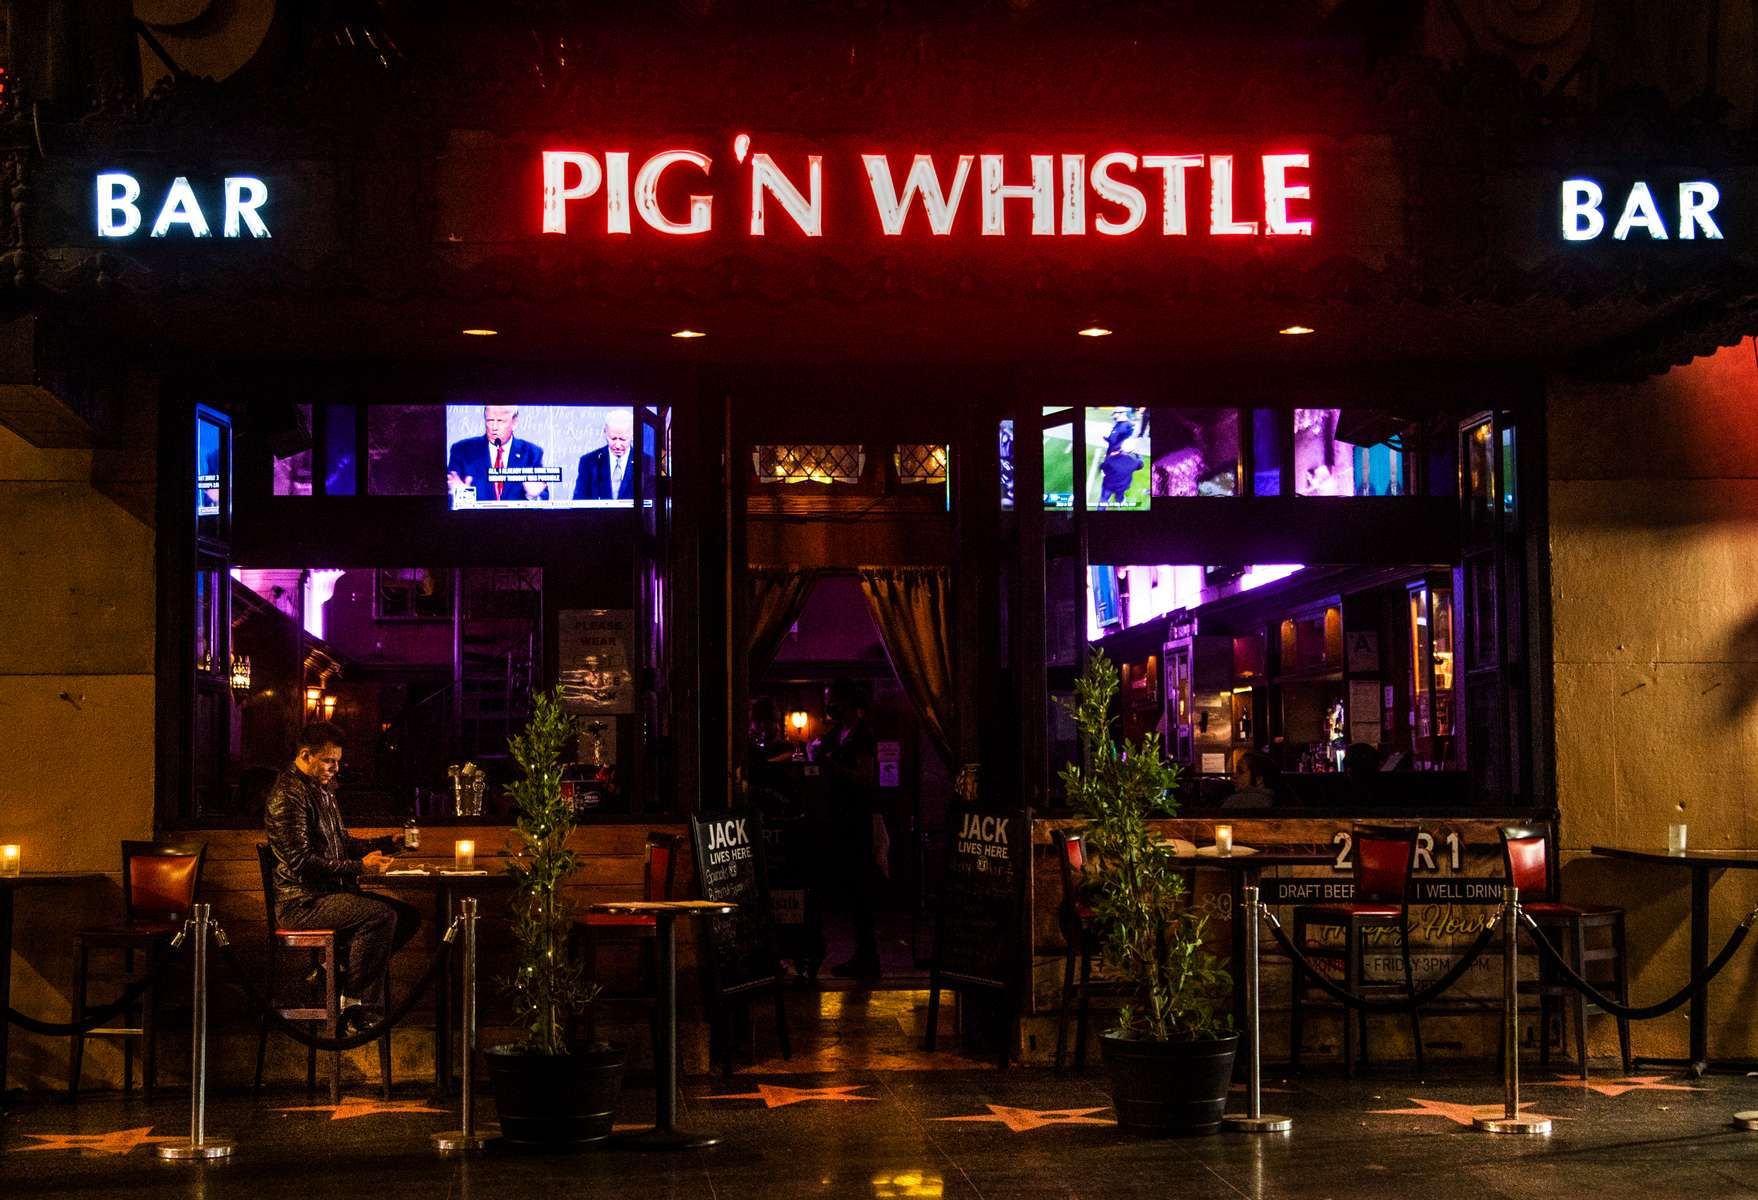 The third presidential debate is screened on TV during Happy Hour in the almost empty Pig'n Whistle on Hollywood Boulevard, on October 22, 2020.